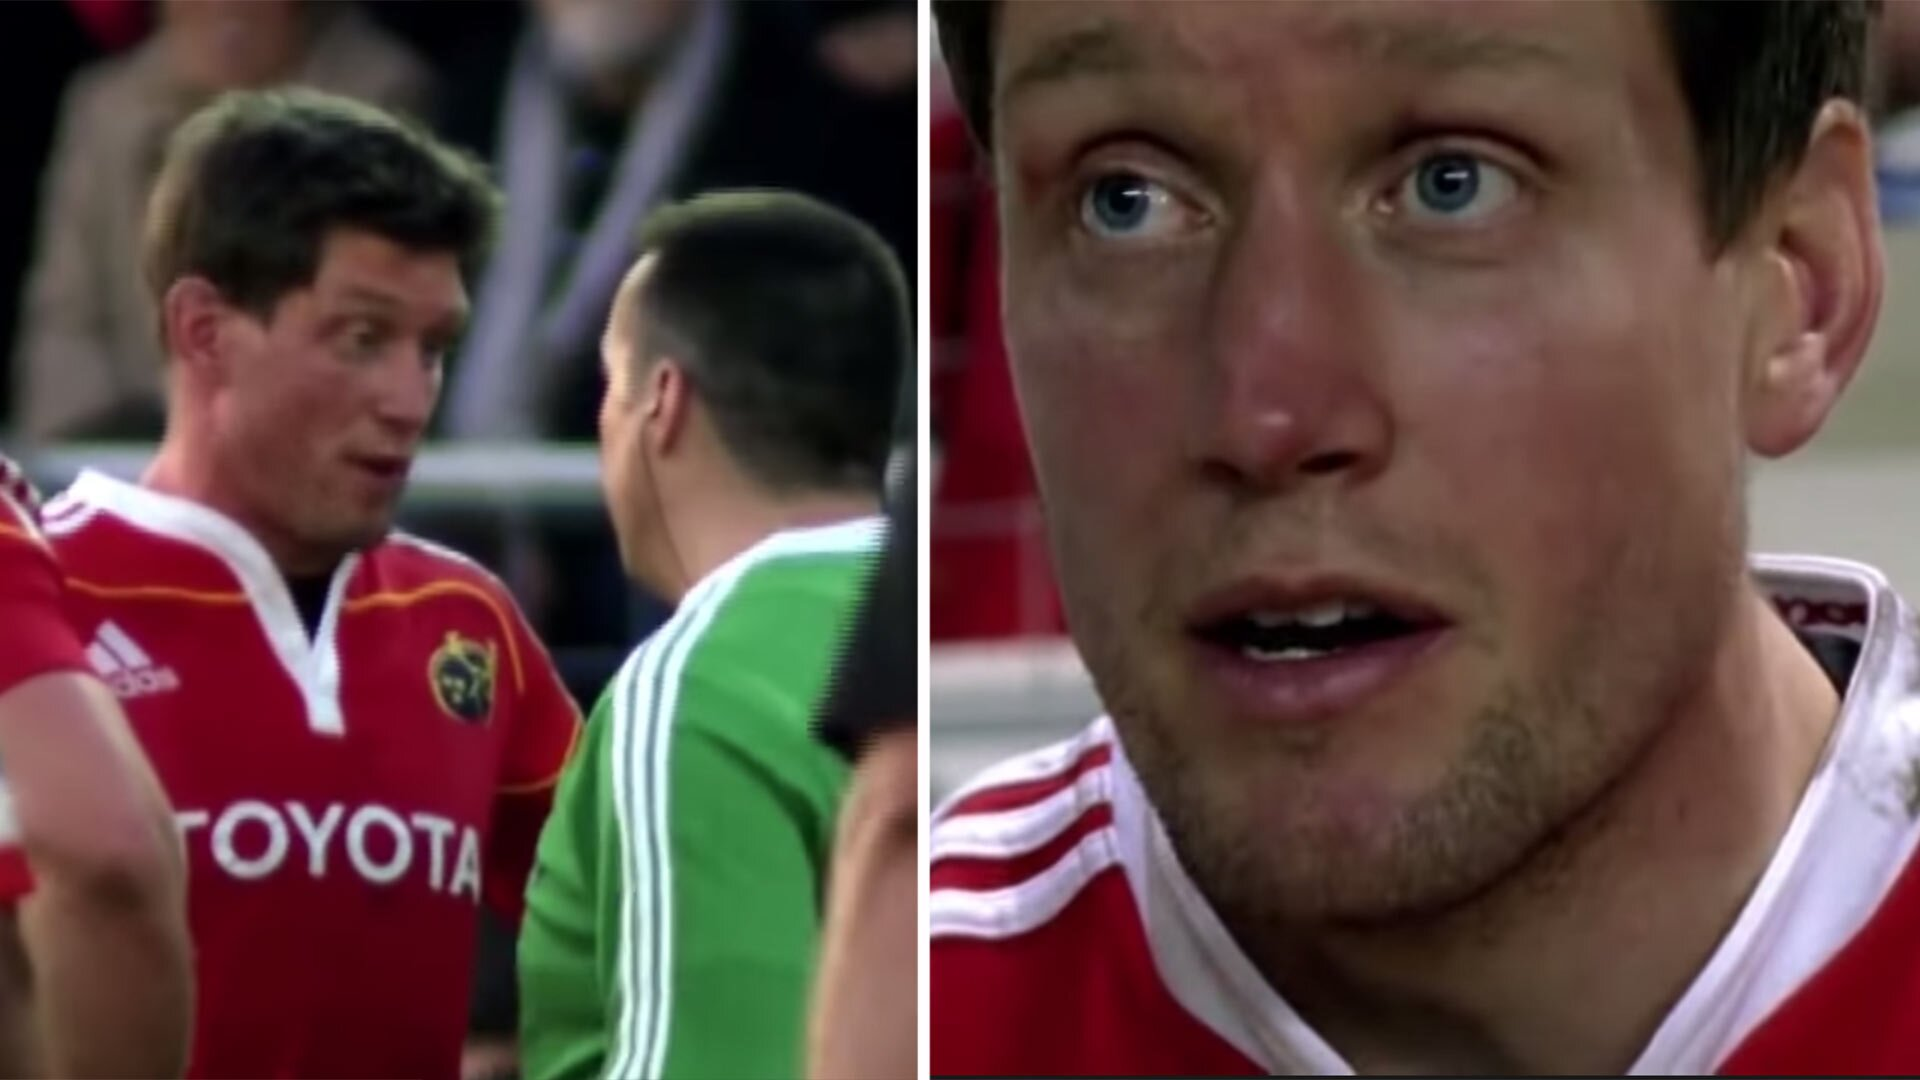 Footage shows the gut-wrenching moment Ronan O'Gara admits he should retire from rugby